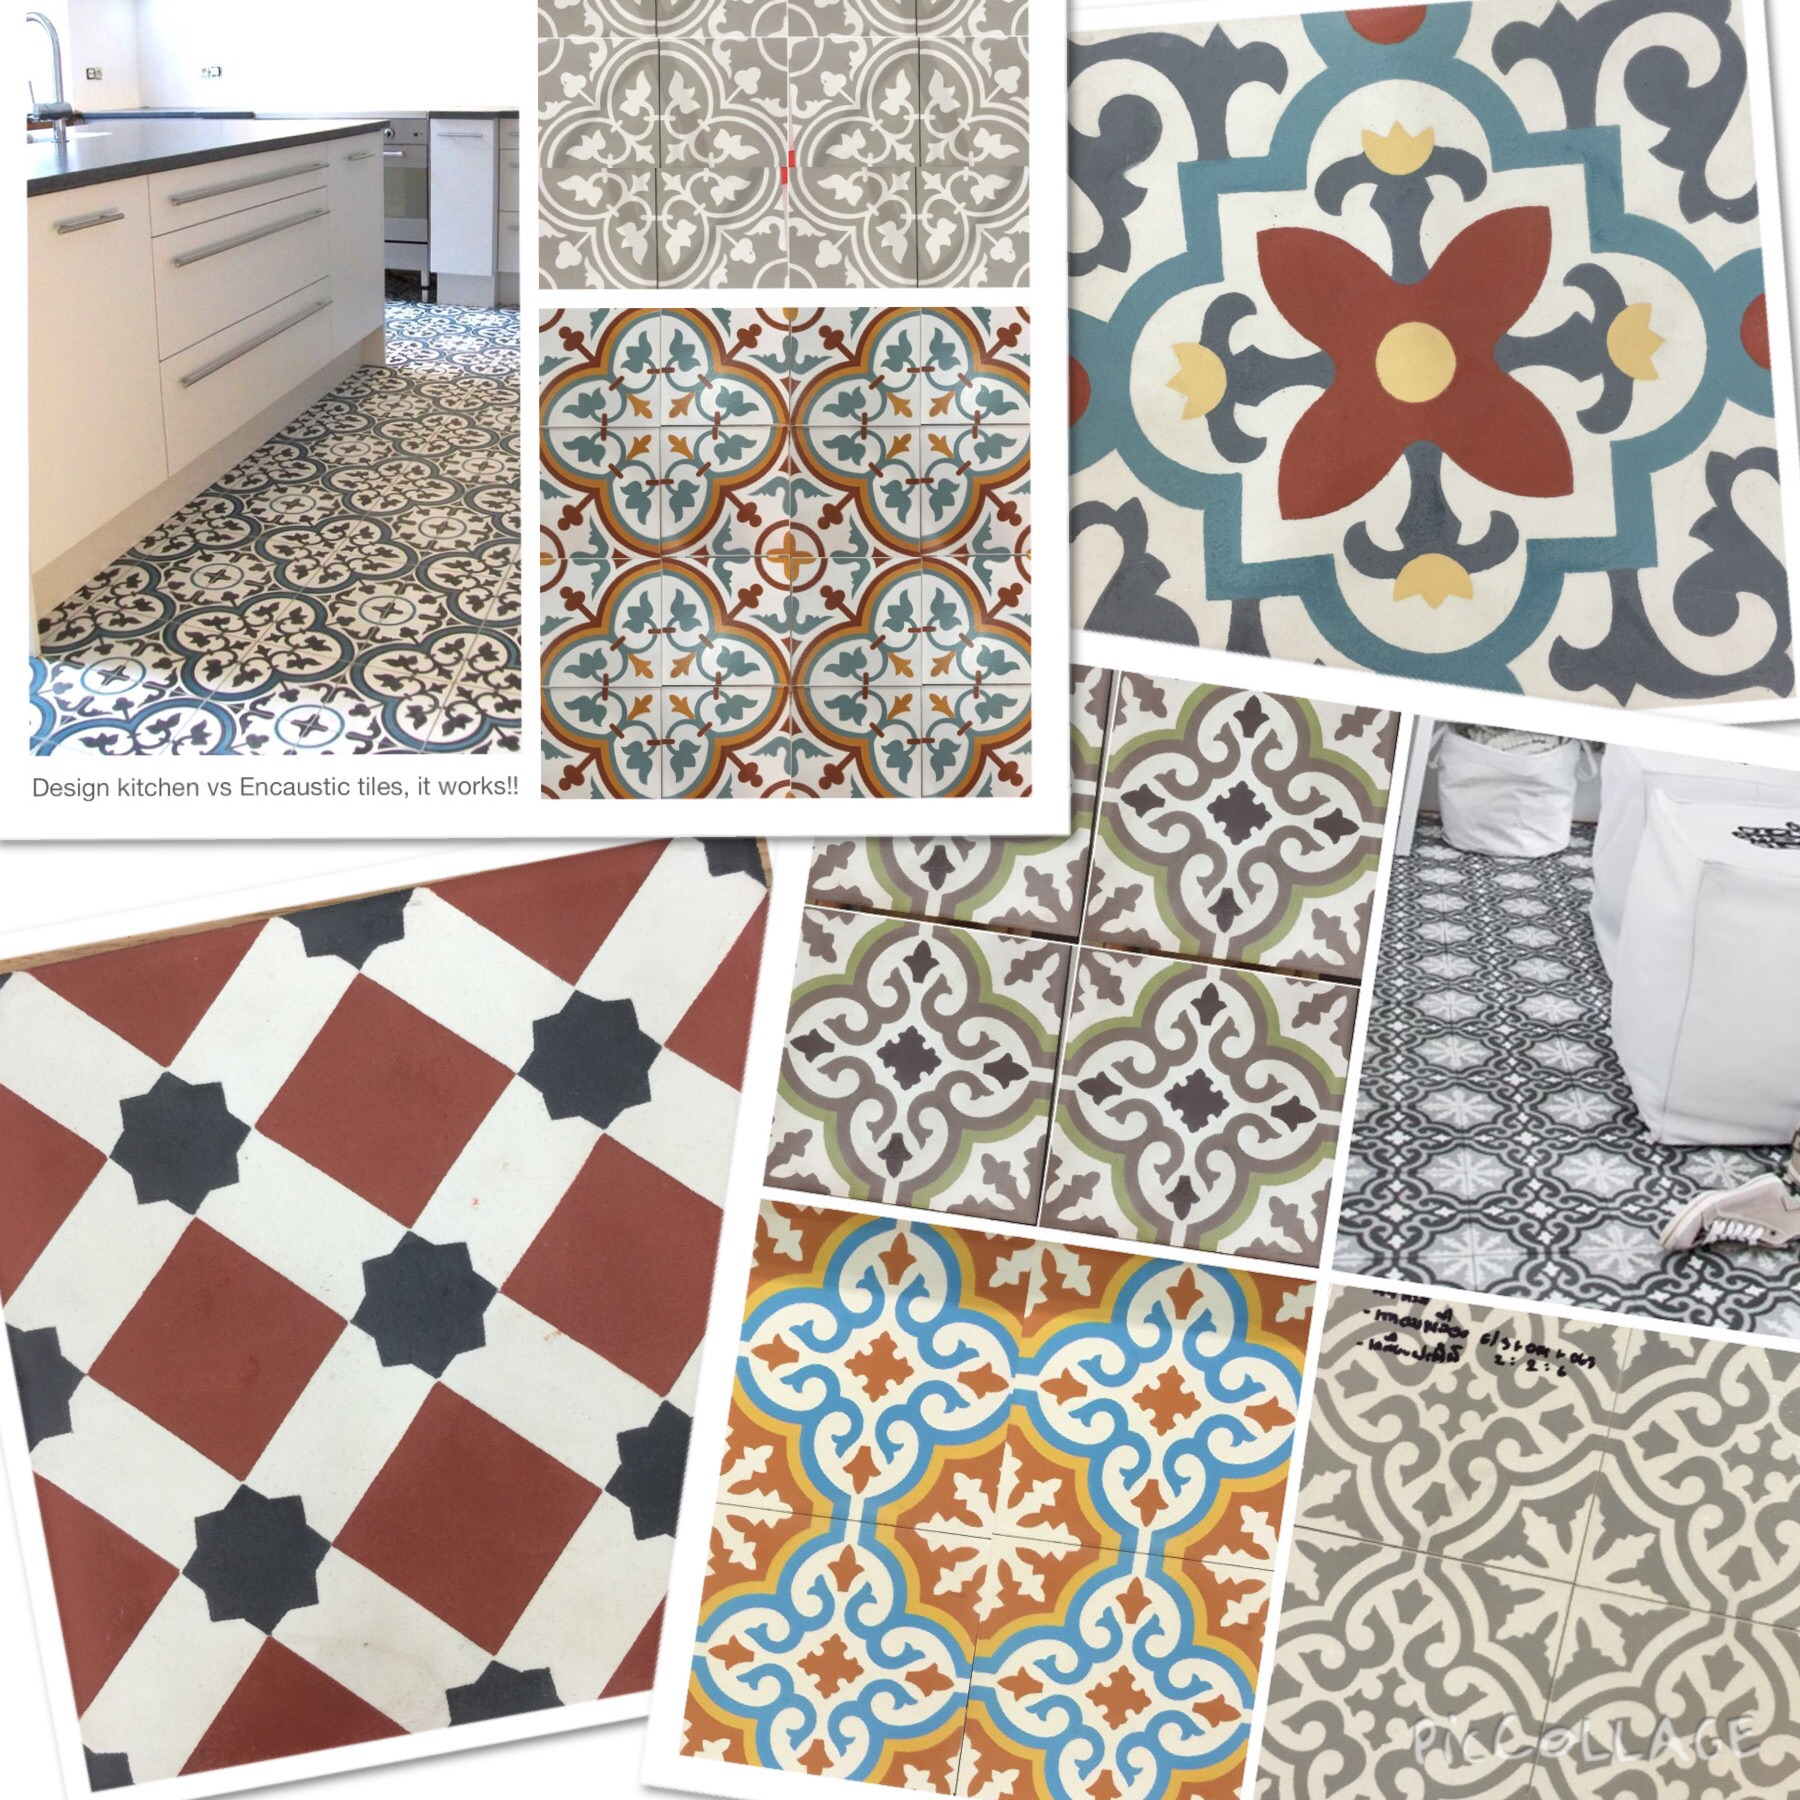 CEMENT tiles look cool with modern or antique furniture